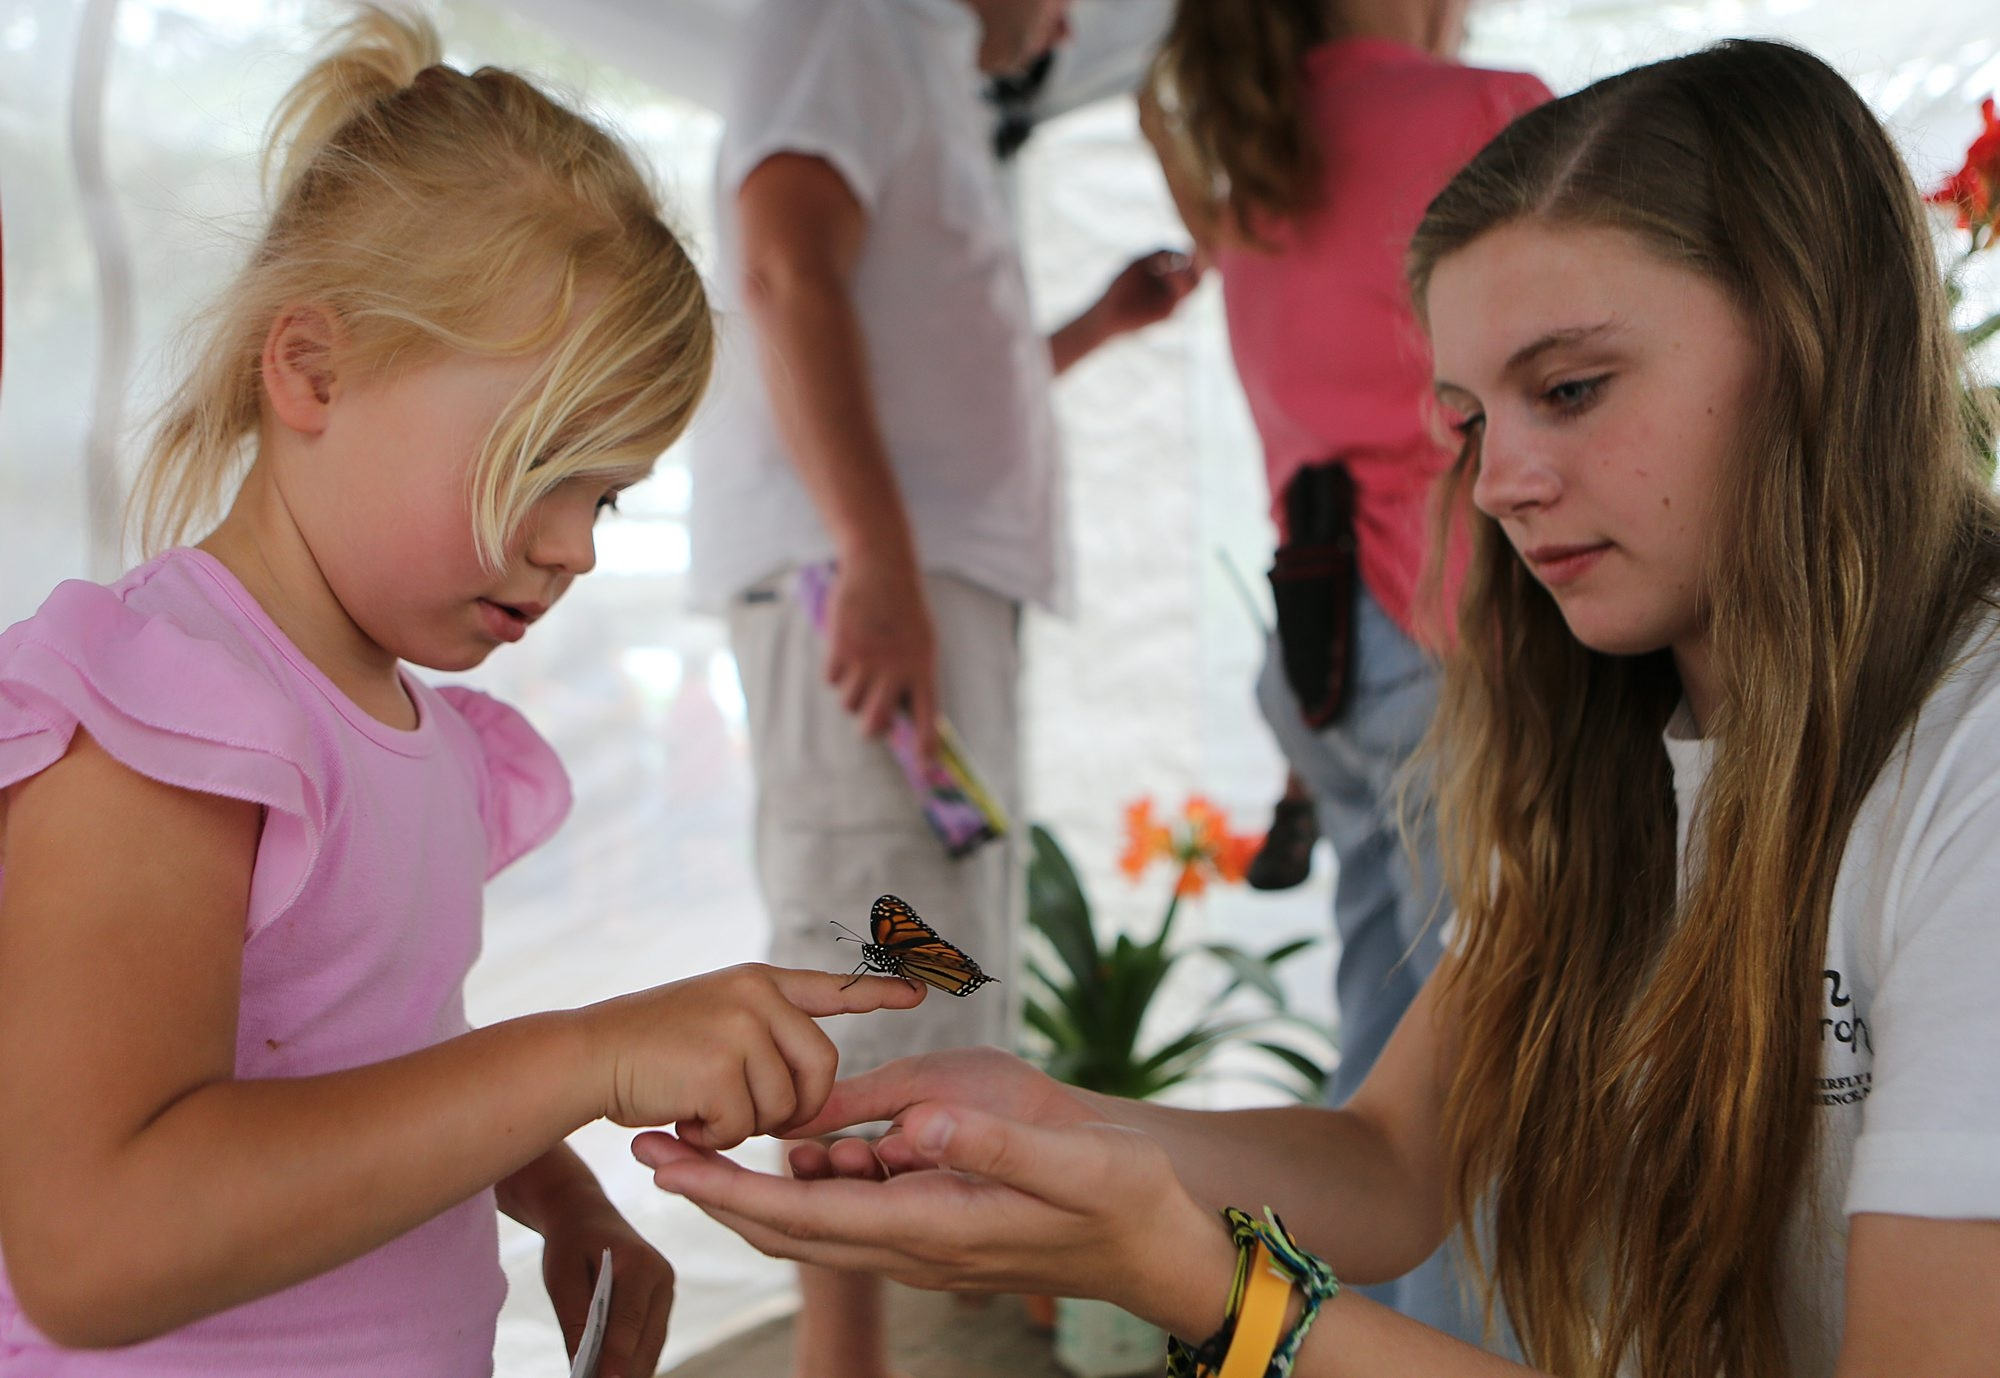 Morgan Vozga, a butterfly wrangler from the Monarch butterfly Farm in Clarence, right, helps Kendall Griffey of West Seneca hold a Monarch butterfly at the Buffalo and Erie County Botanical Gardens.